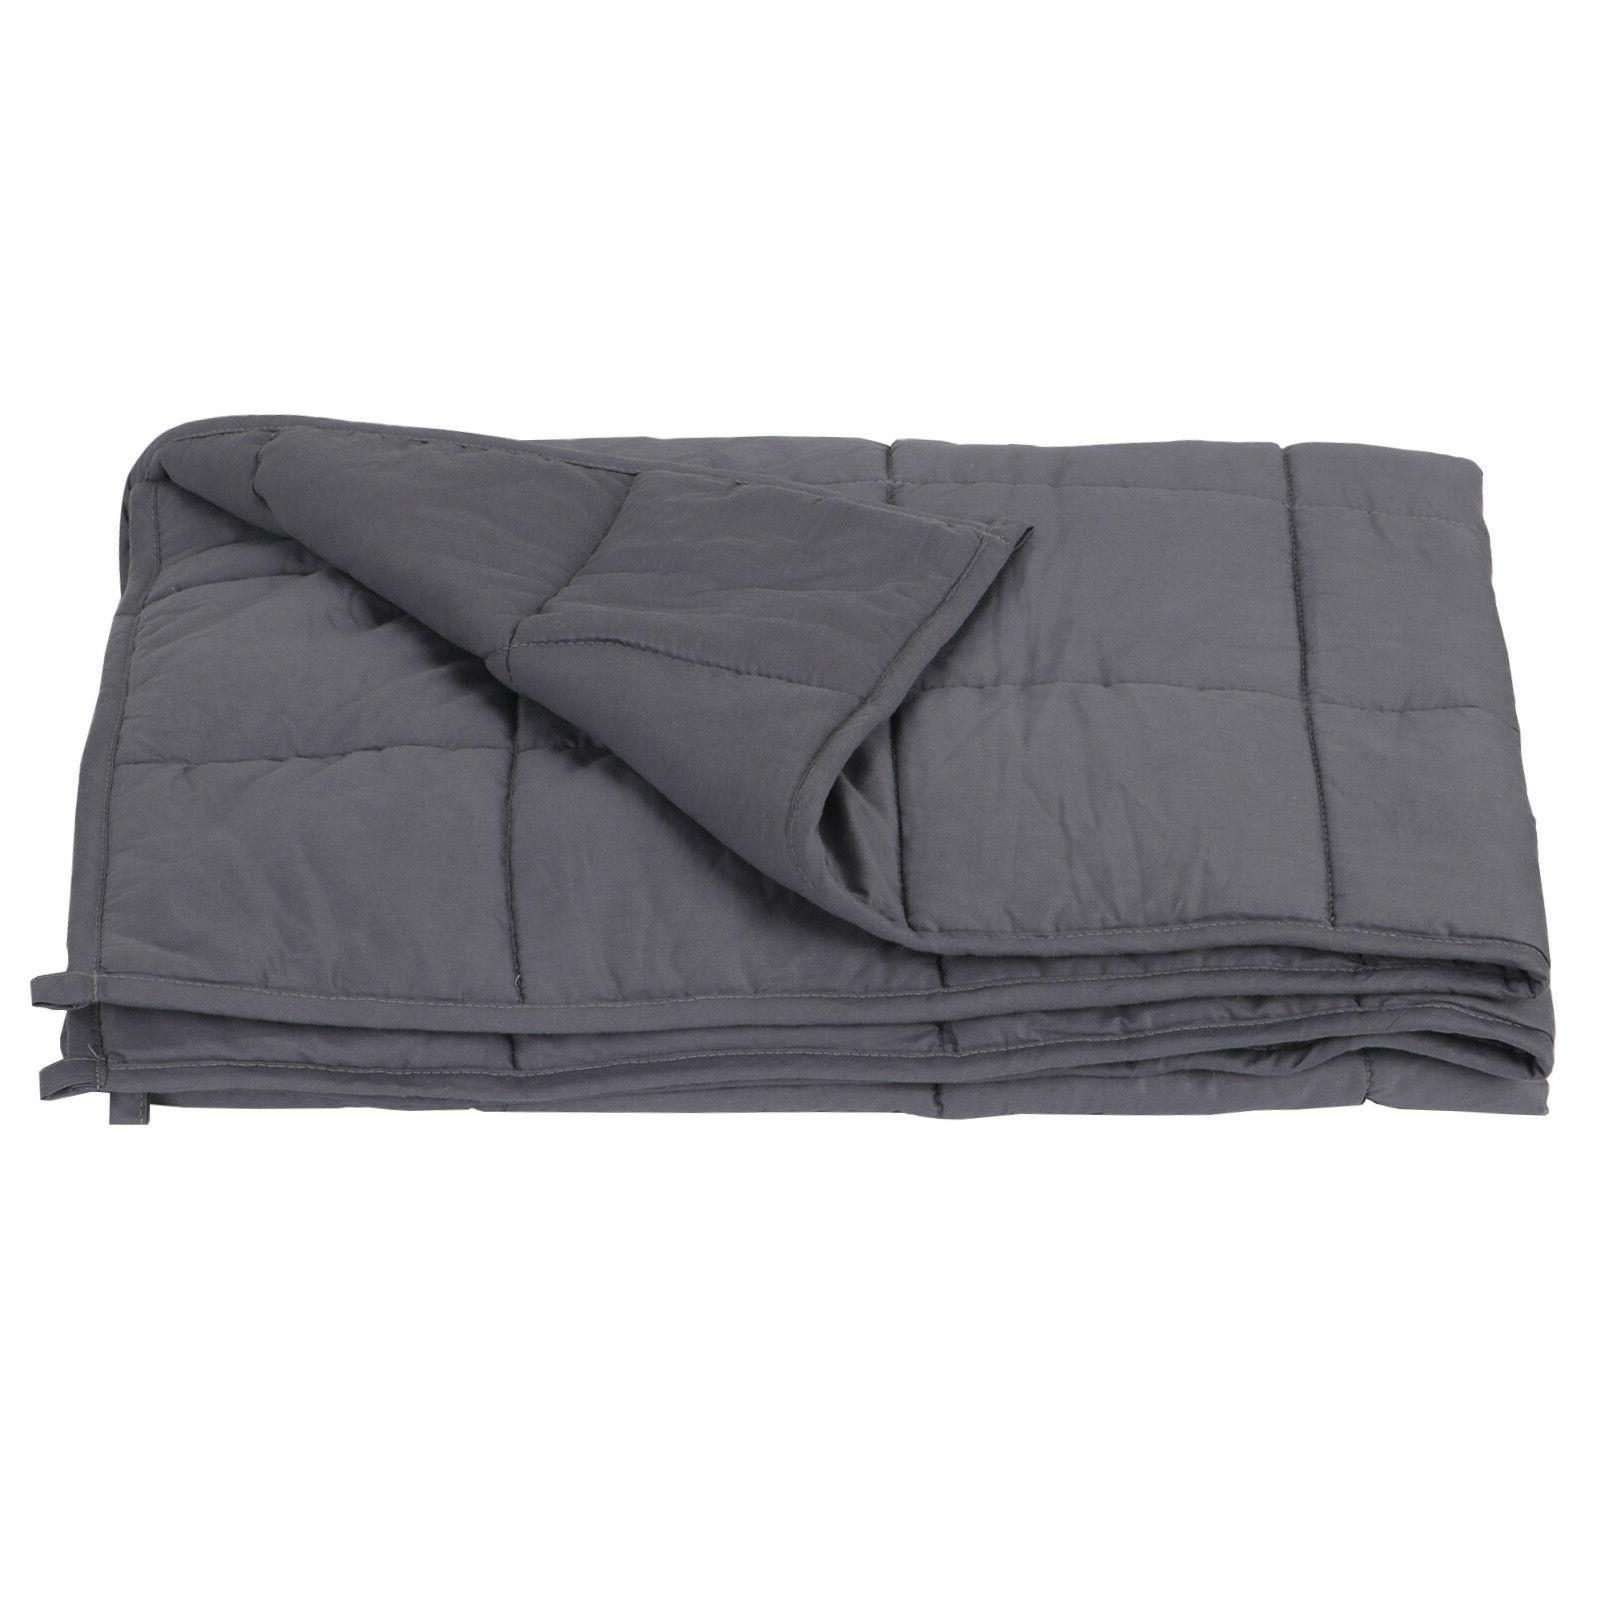 "60"" x80"" Weighted Blanket  Full Queen Size Reduce Stress Pro"